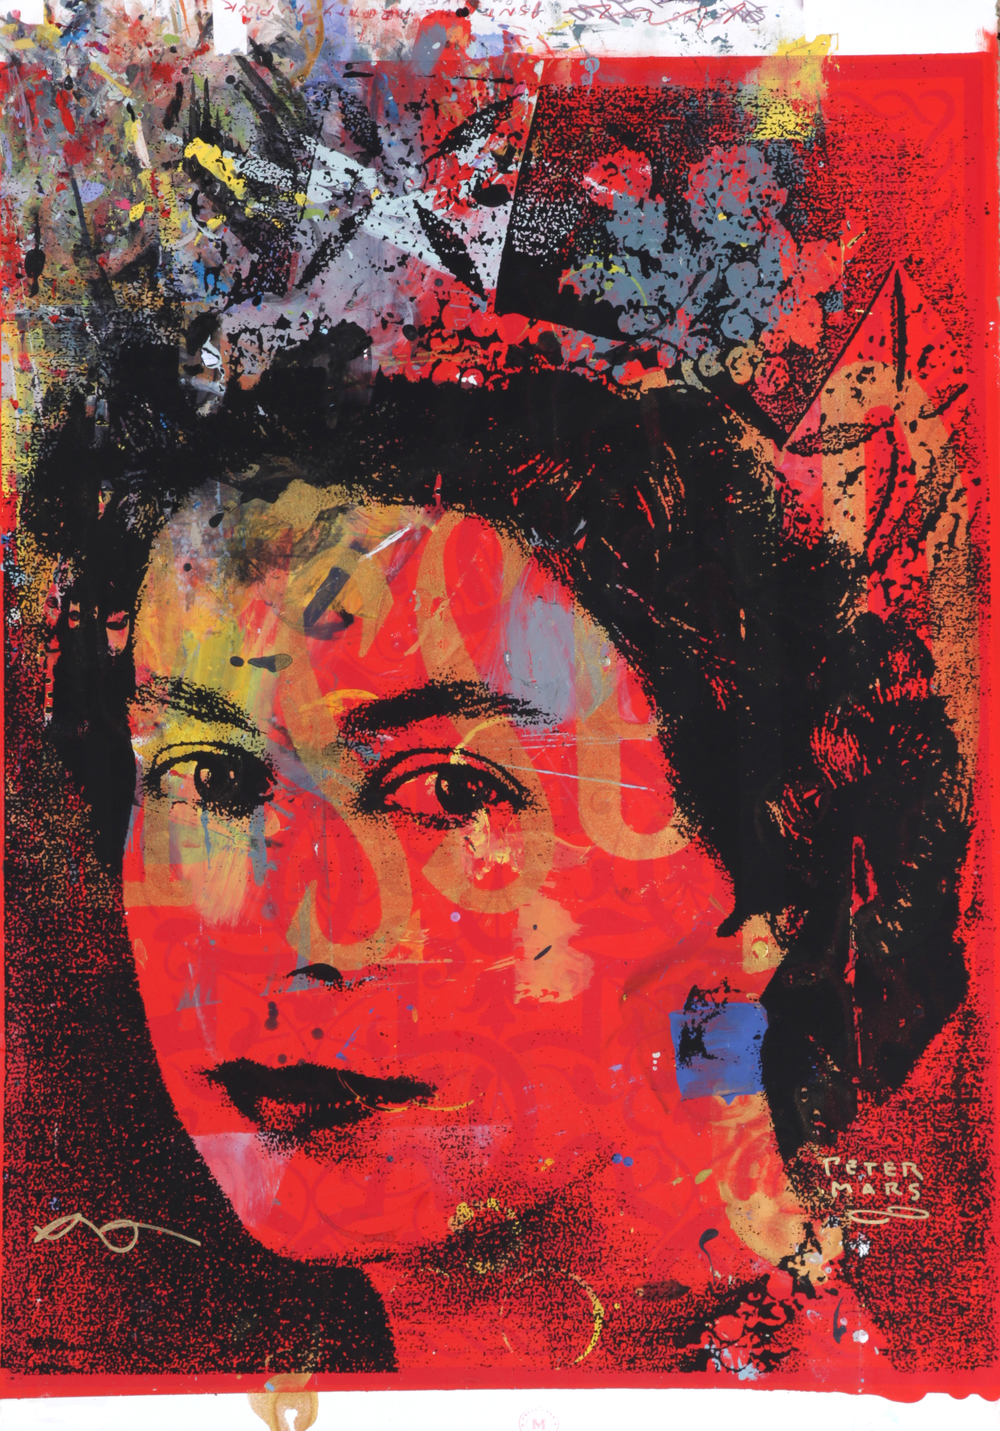 GSTQ Crown Jewels ,  Peter Mars, American Pop Art, 30x40""